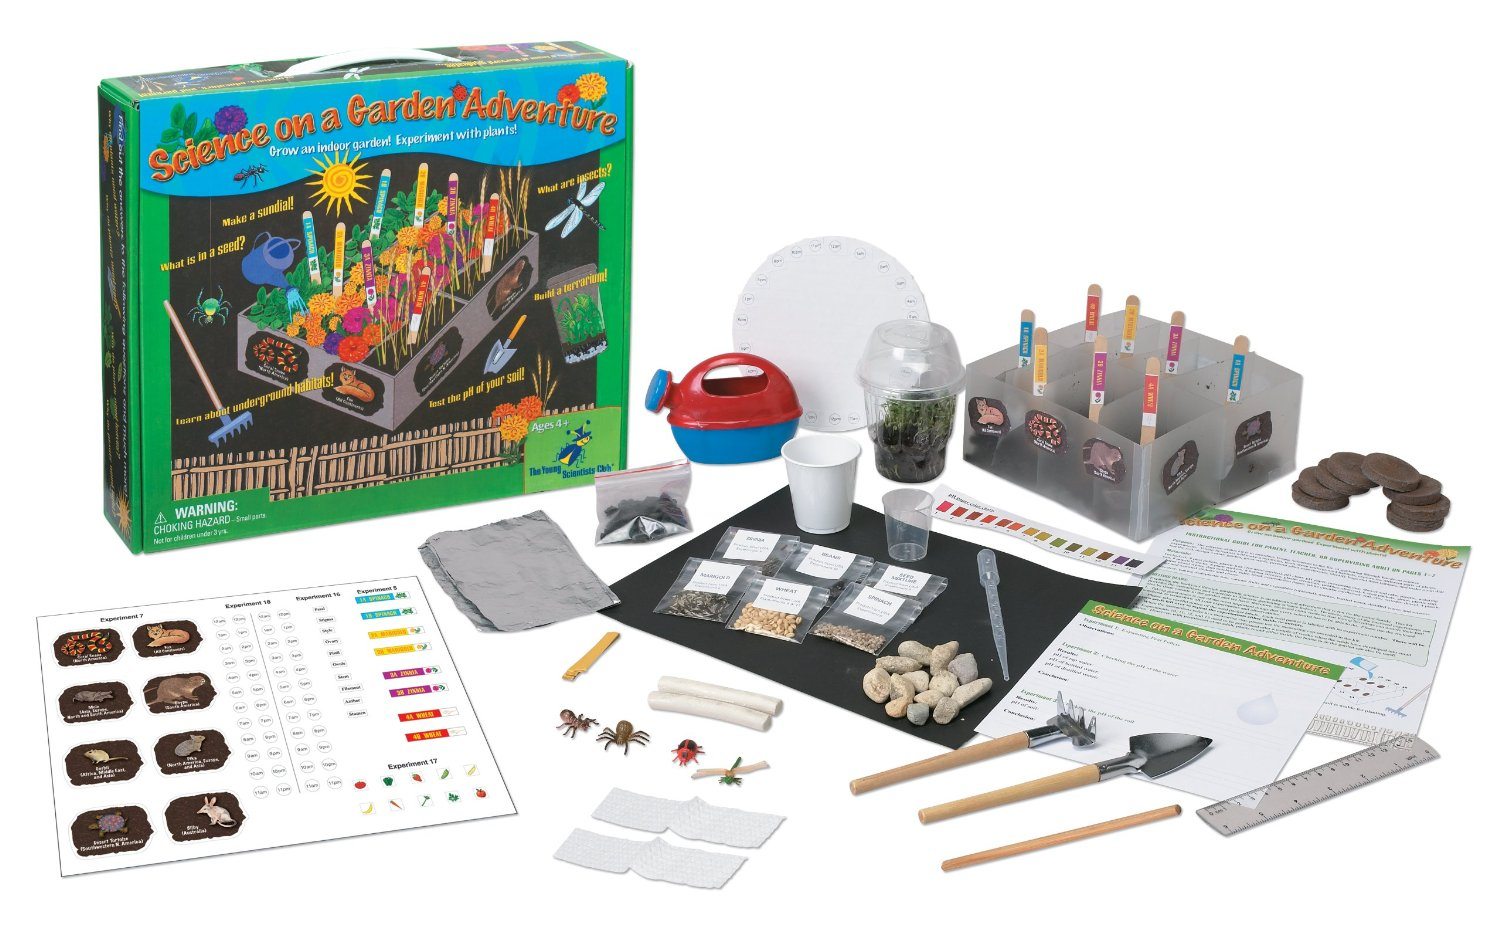 HOLIDAY GIFT GUIDE 2016 STEM TOYS FOR TODDLERS Nature Series: Science on a Garden Adventure